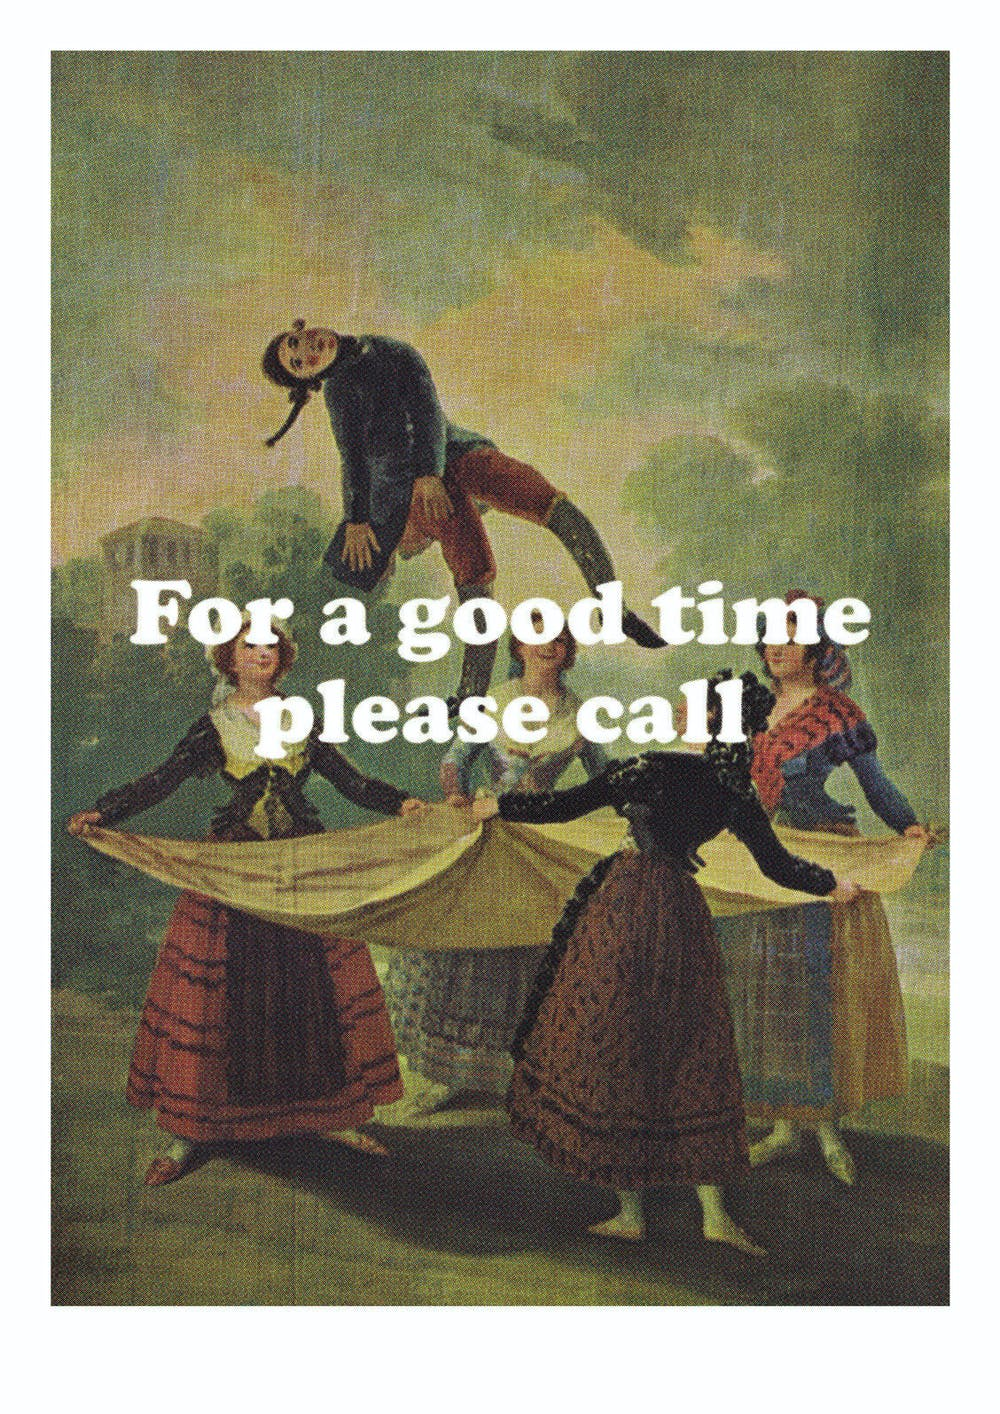 For a good time 4 image riso web 0 1128 0 0